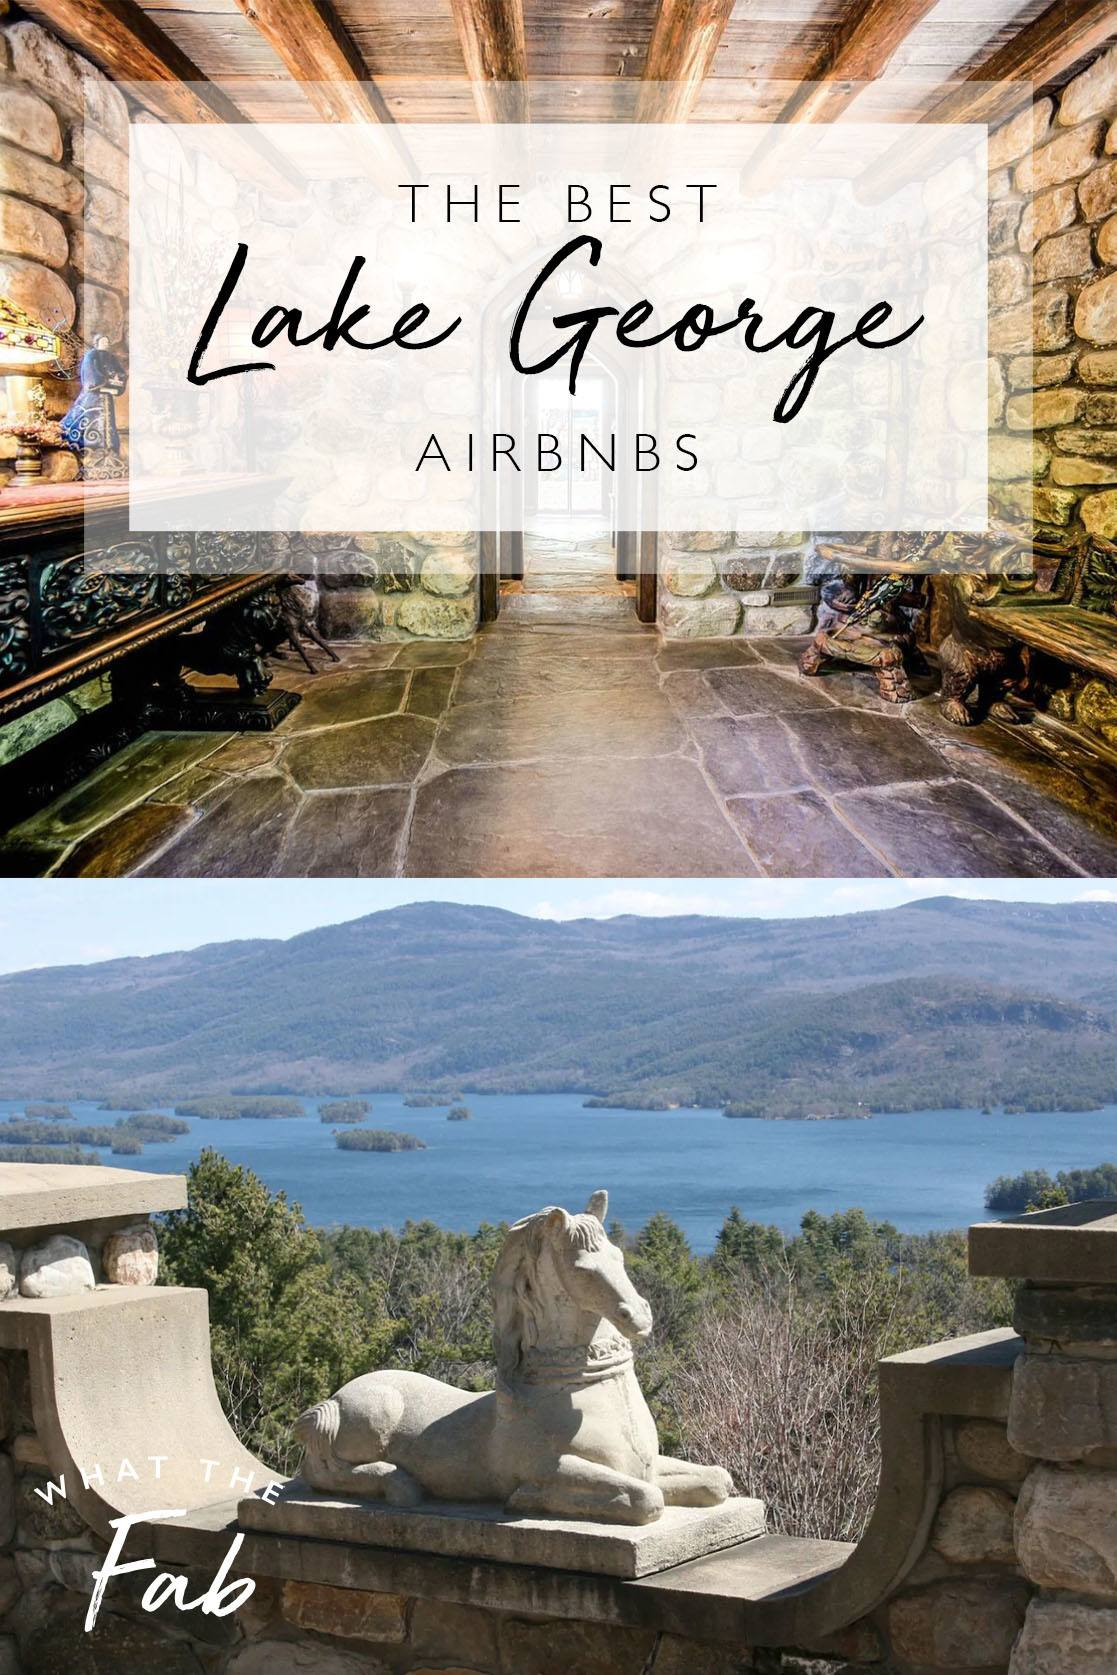 Lake George Airbnb, by Travel Blogger What The Fab